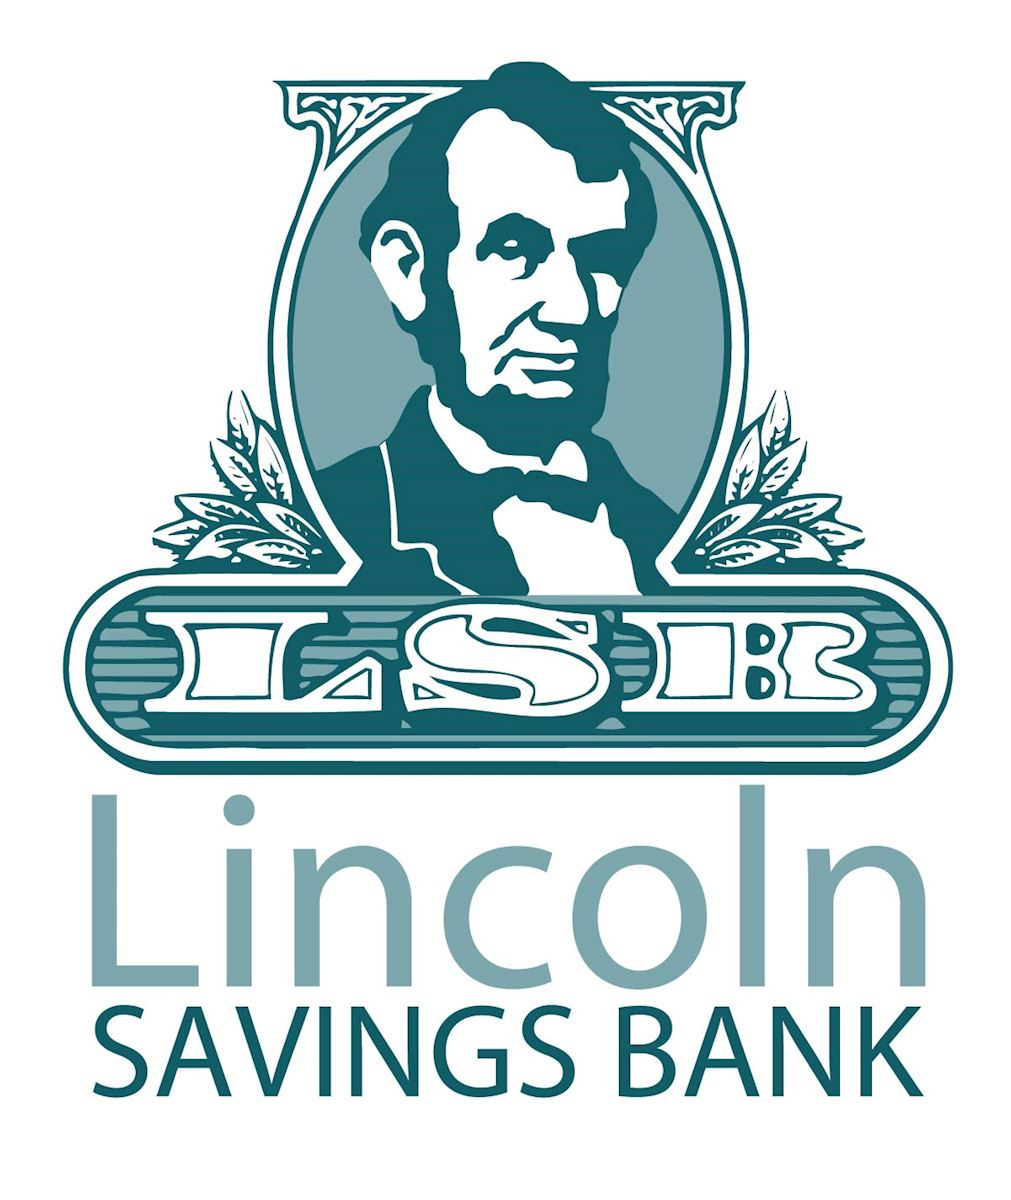 Lincoln Savings Bank finalist for 2020 Prometheus Awards